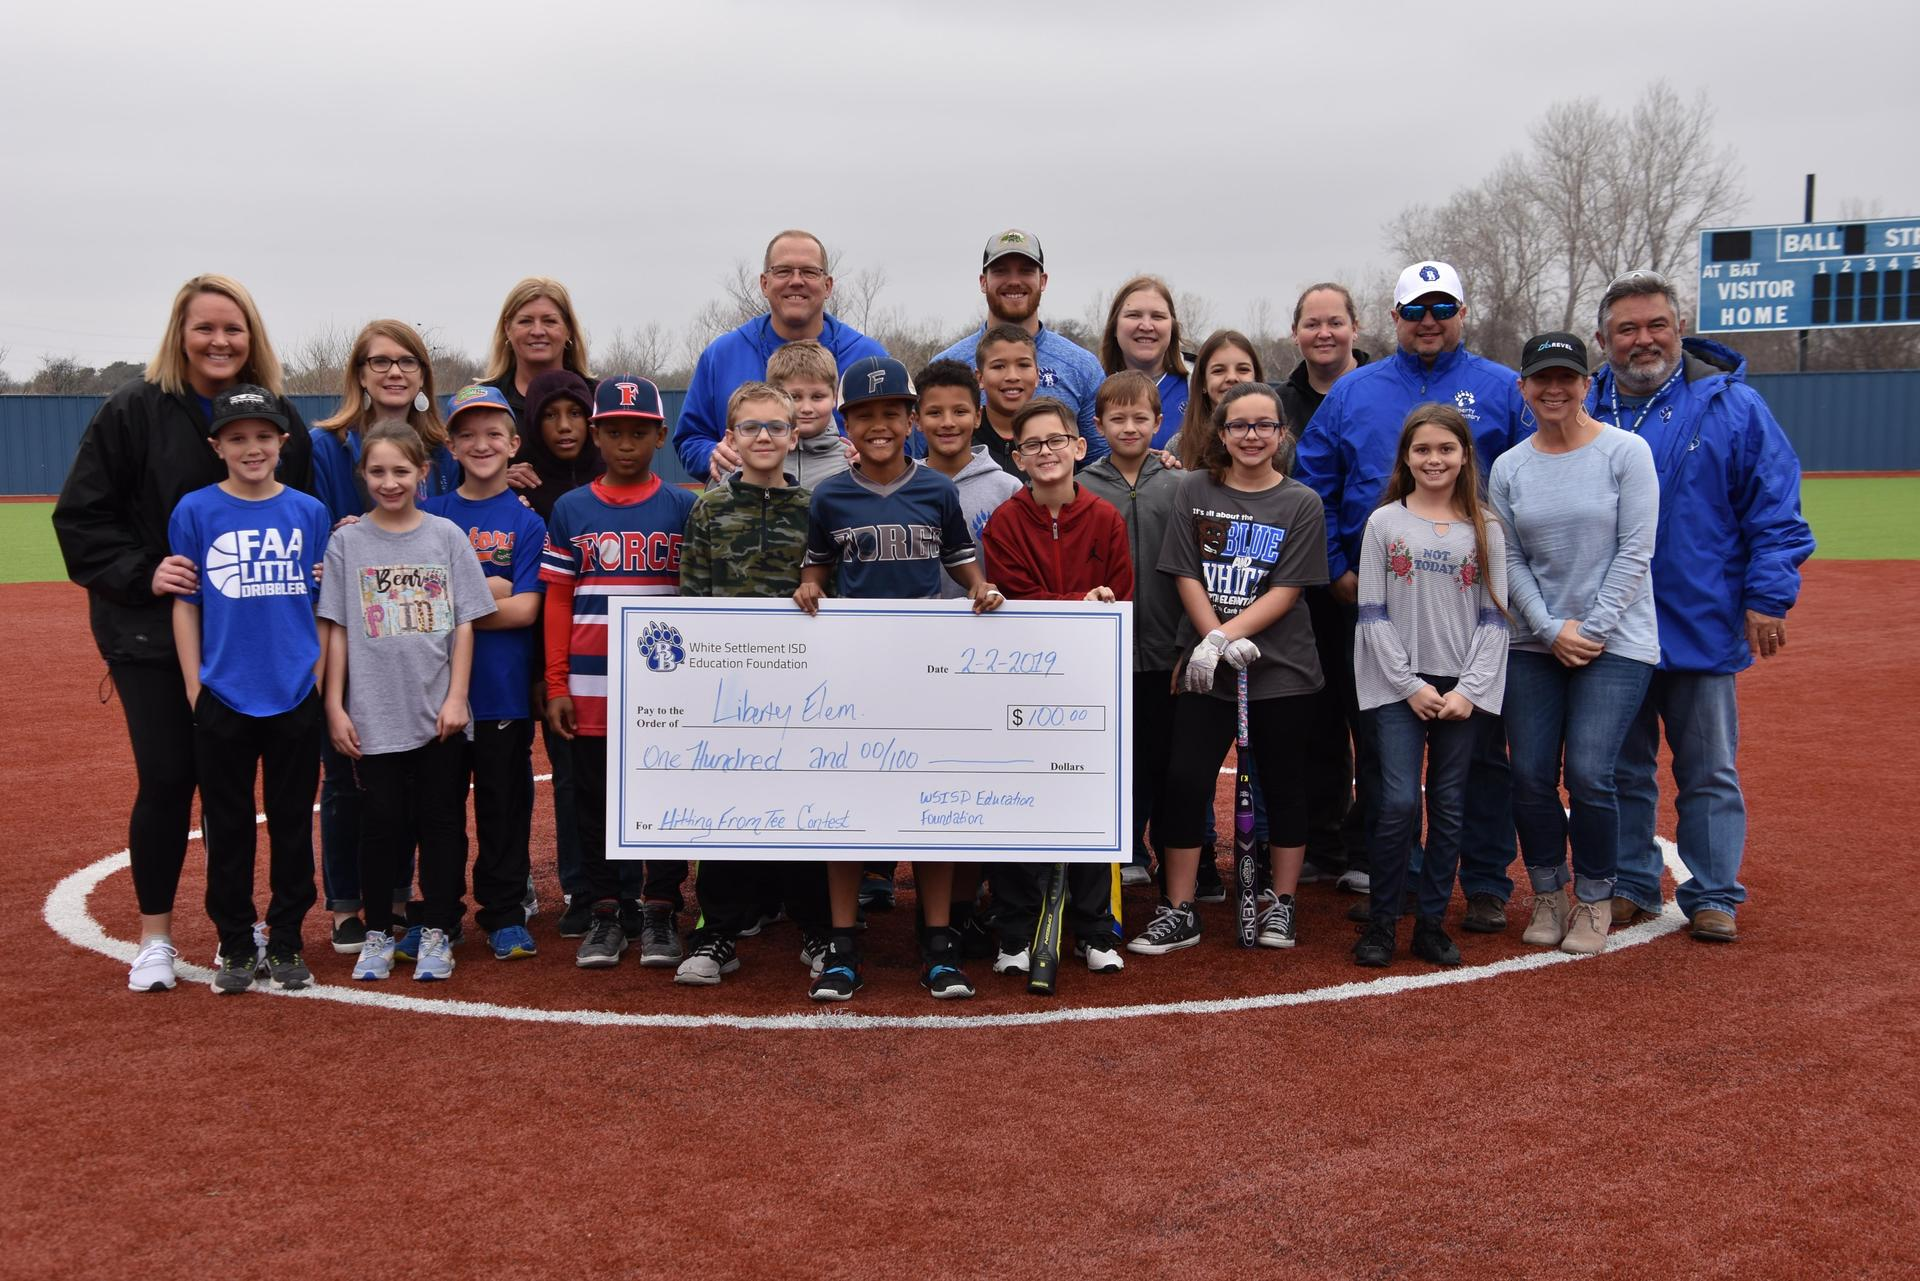 The Foundation awarded $300 to schools during the Spring Sports Rally and Opening Day Ceremony on Feb. 2.